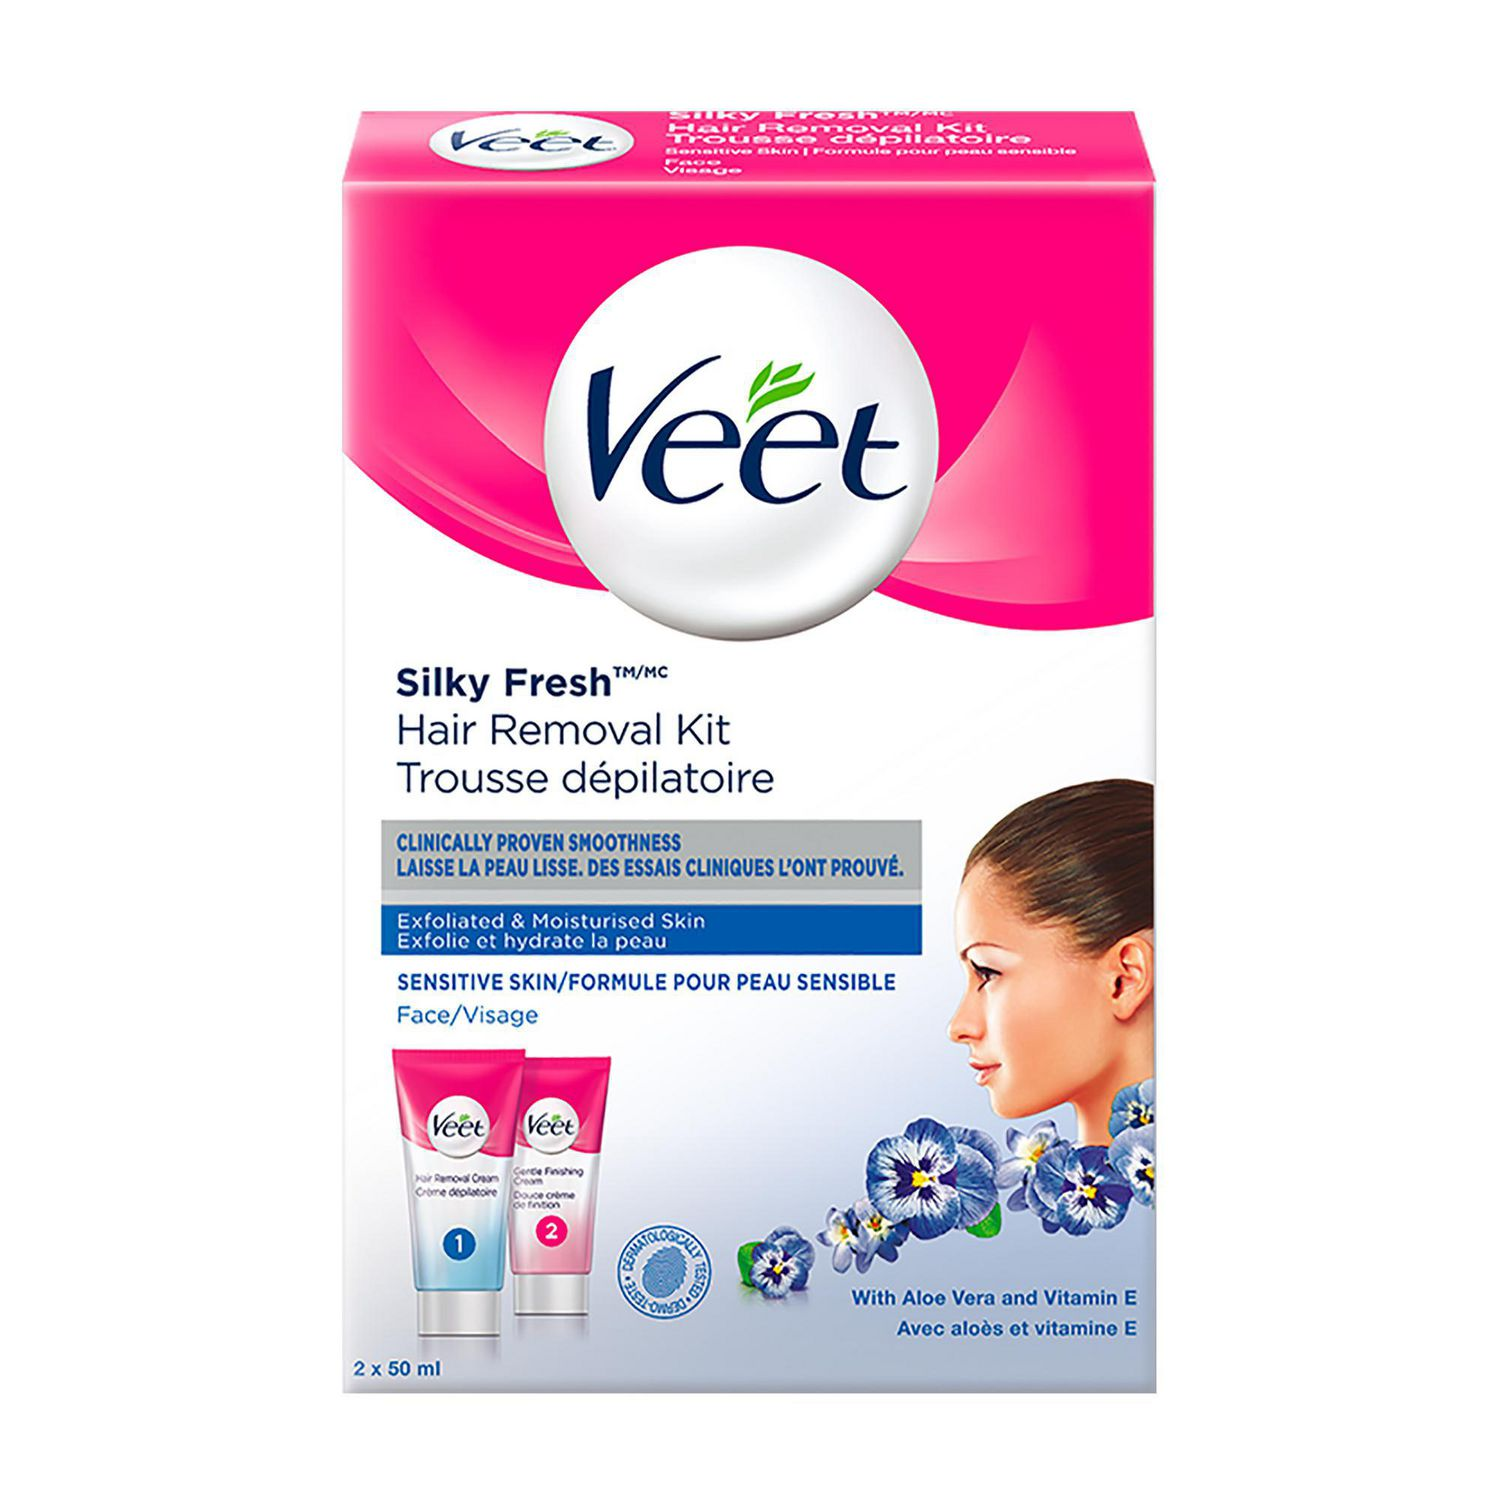 Veet® Silky Fresh ™ Face Hair Removal Kit Sensitive Skin, 2 x 50 mL |  Walmart Canada